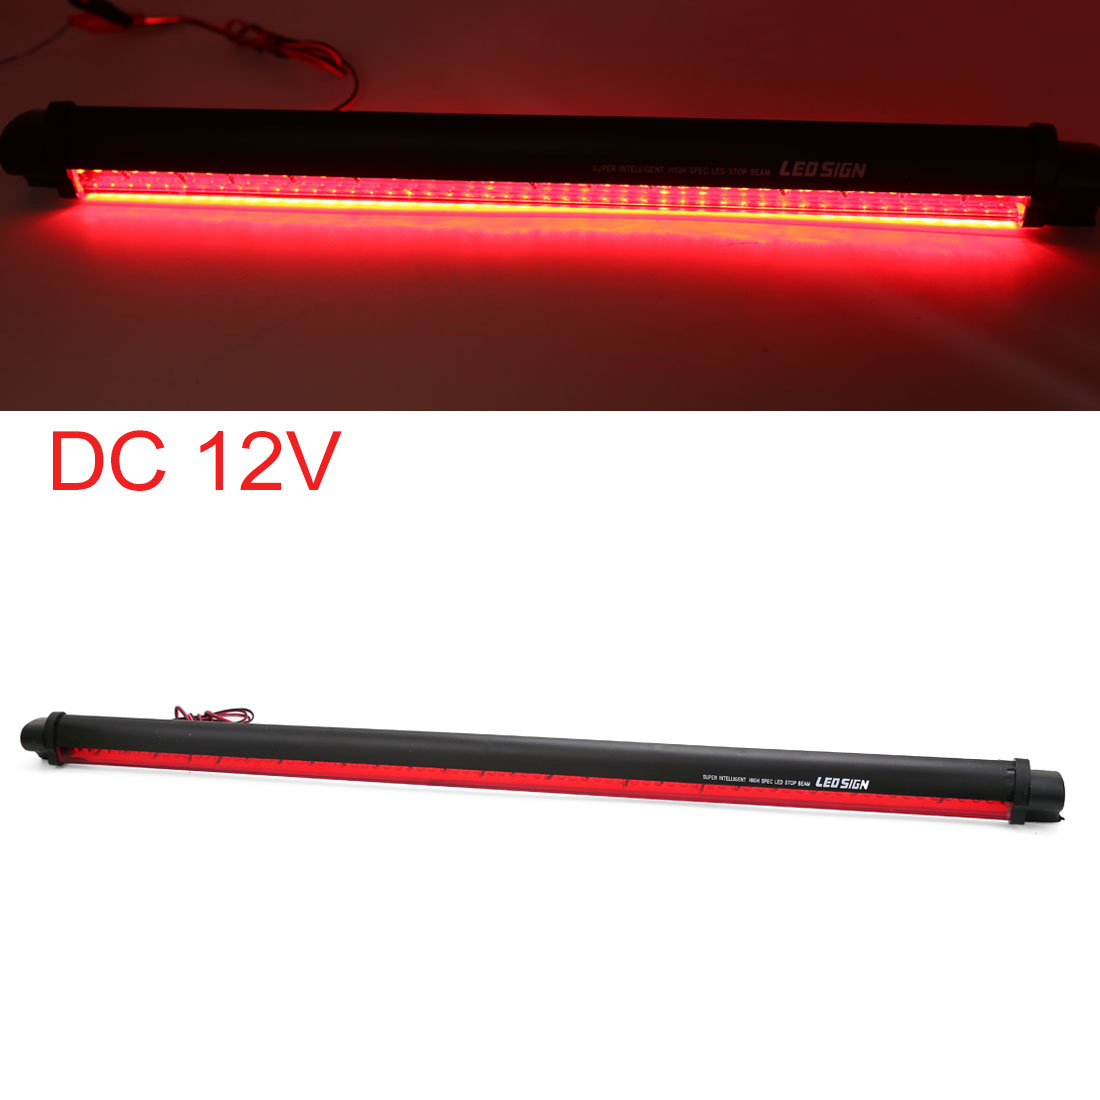 UXCELL Universal Red 80 Led Car Third Rear Tail Brake Light High Mount Stop Lamp 12V